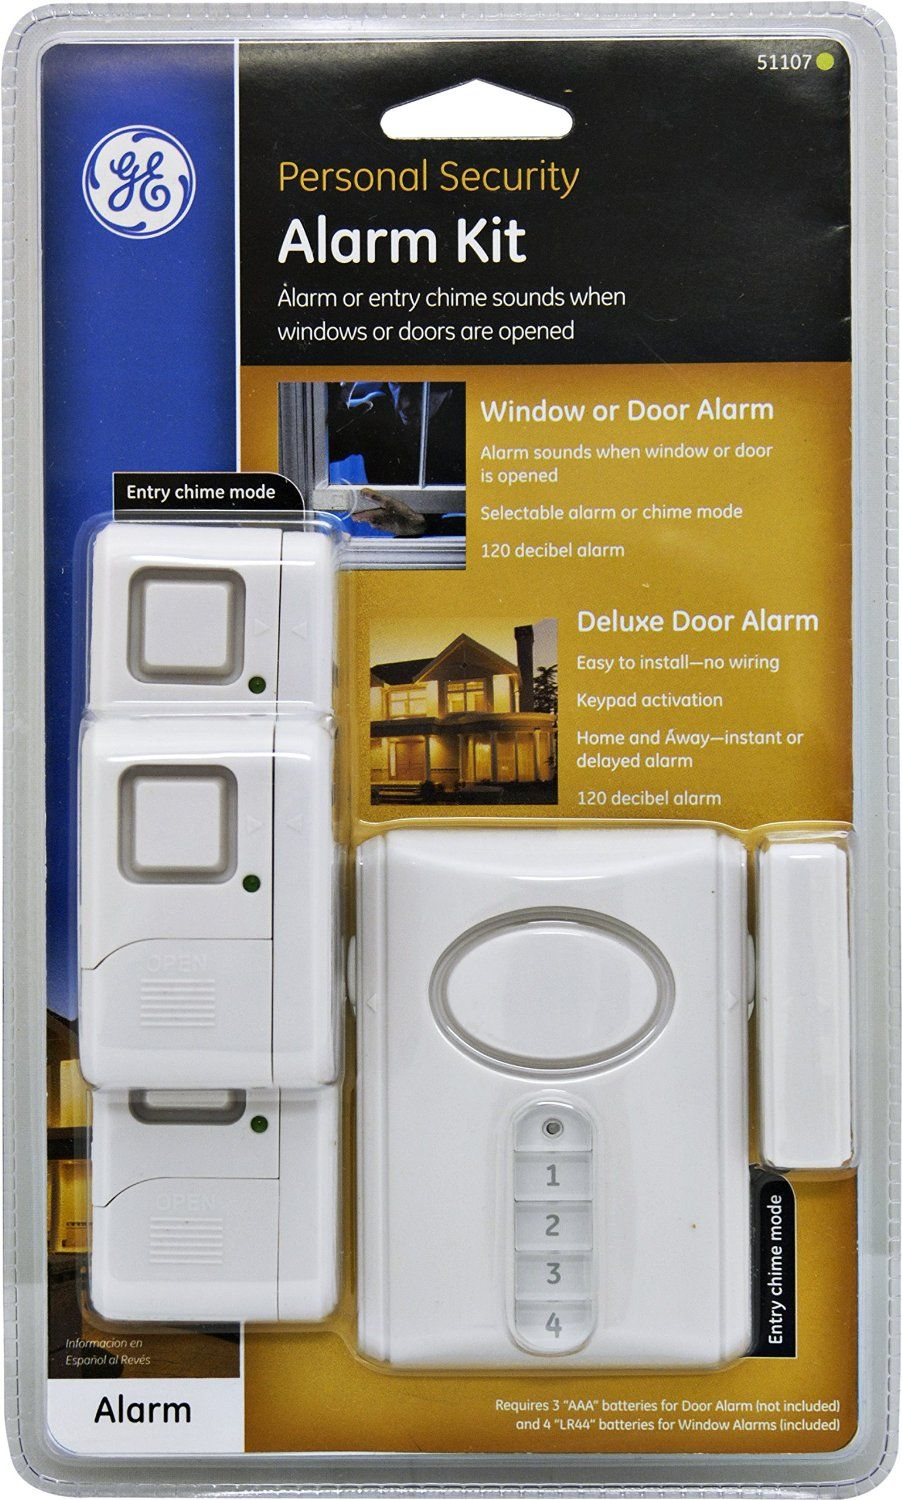 ge personal security alarm kit smart home security systems Home Projector Wiring